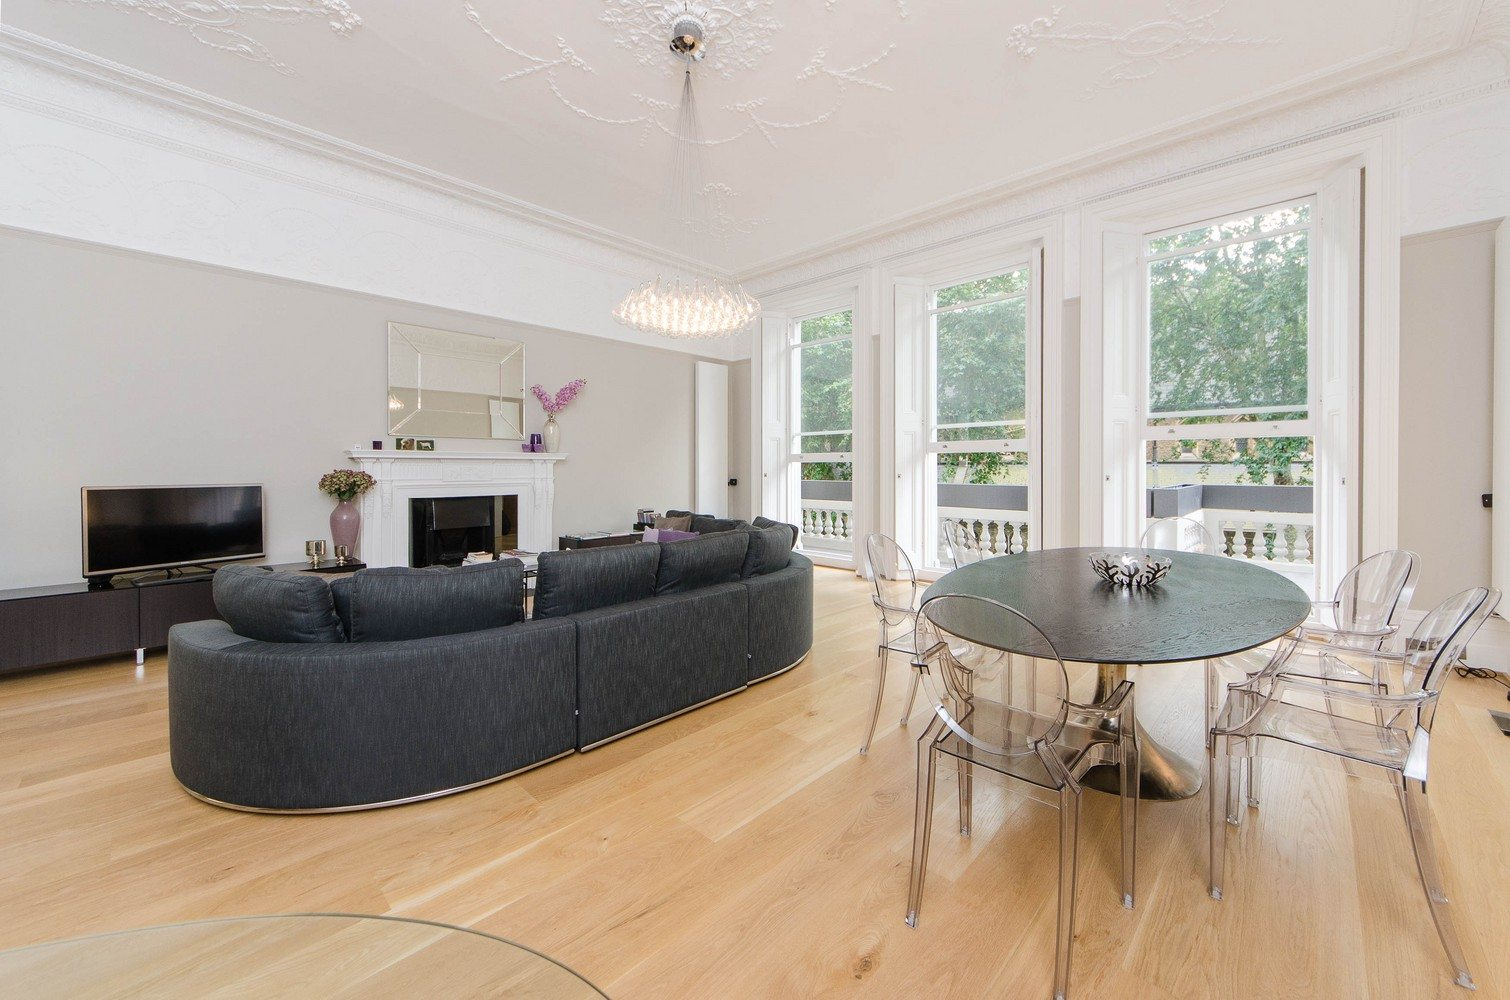 Luxury-Apartments-South-Kensington---Living-Room-and-Dining-Area